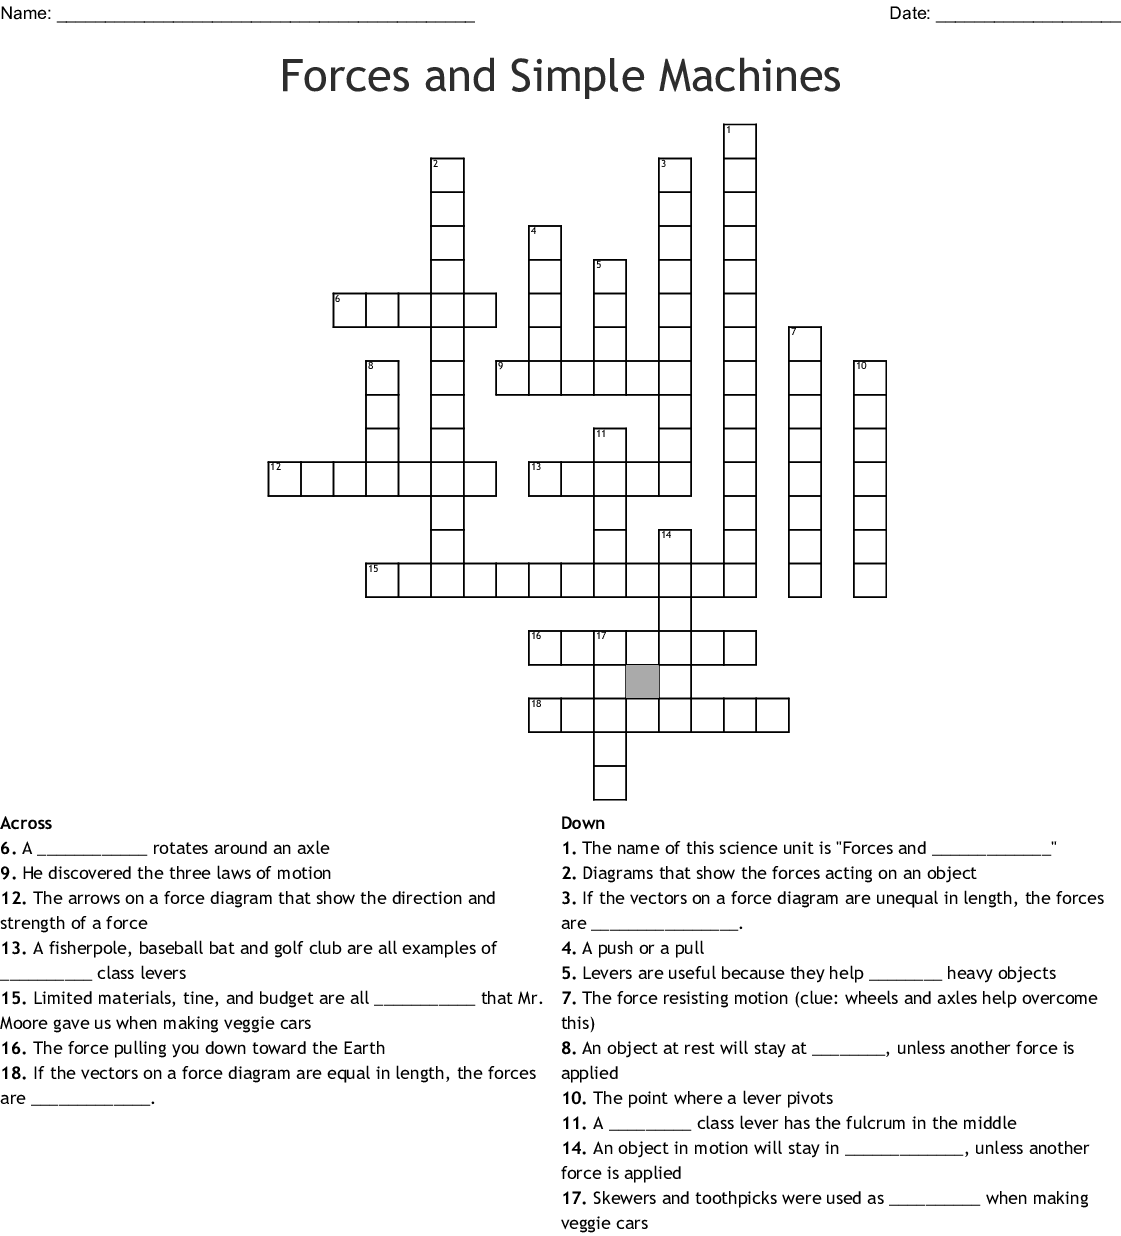 35 Trends For Simple Machines Crossword Puzzle Worksheet